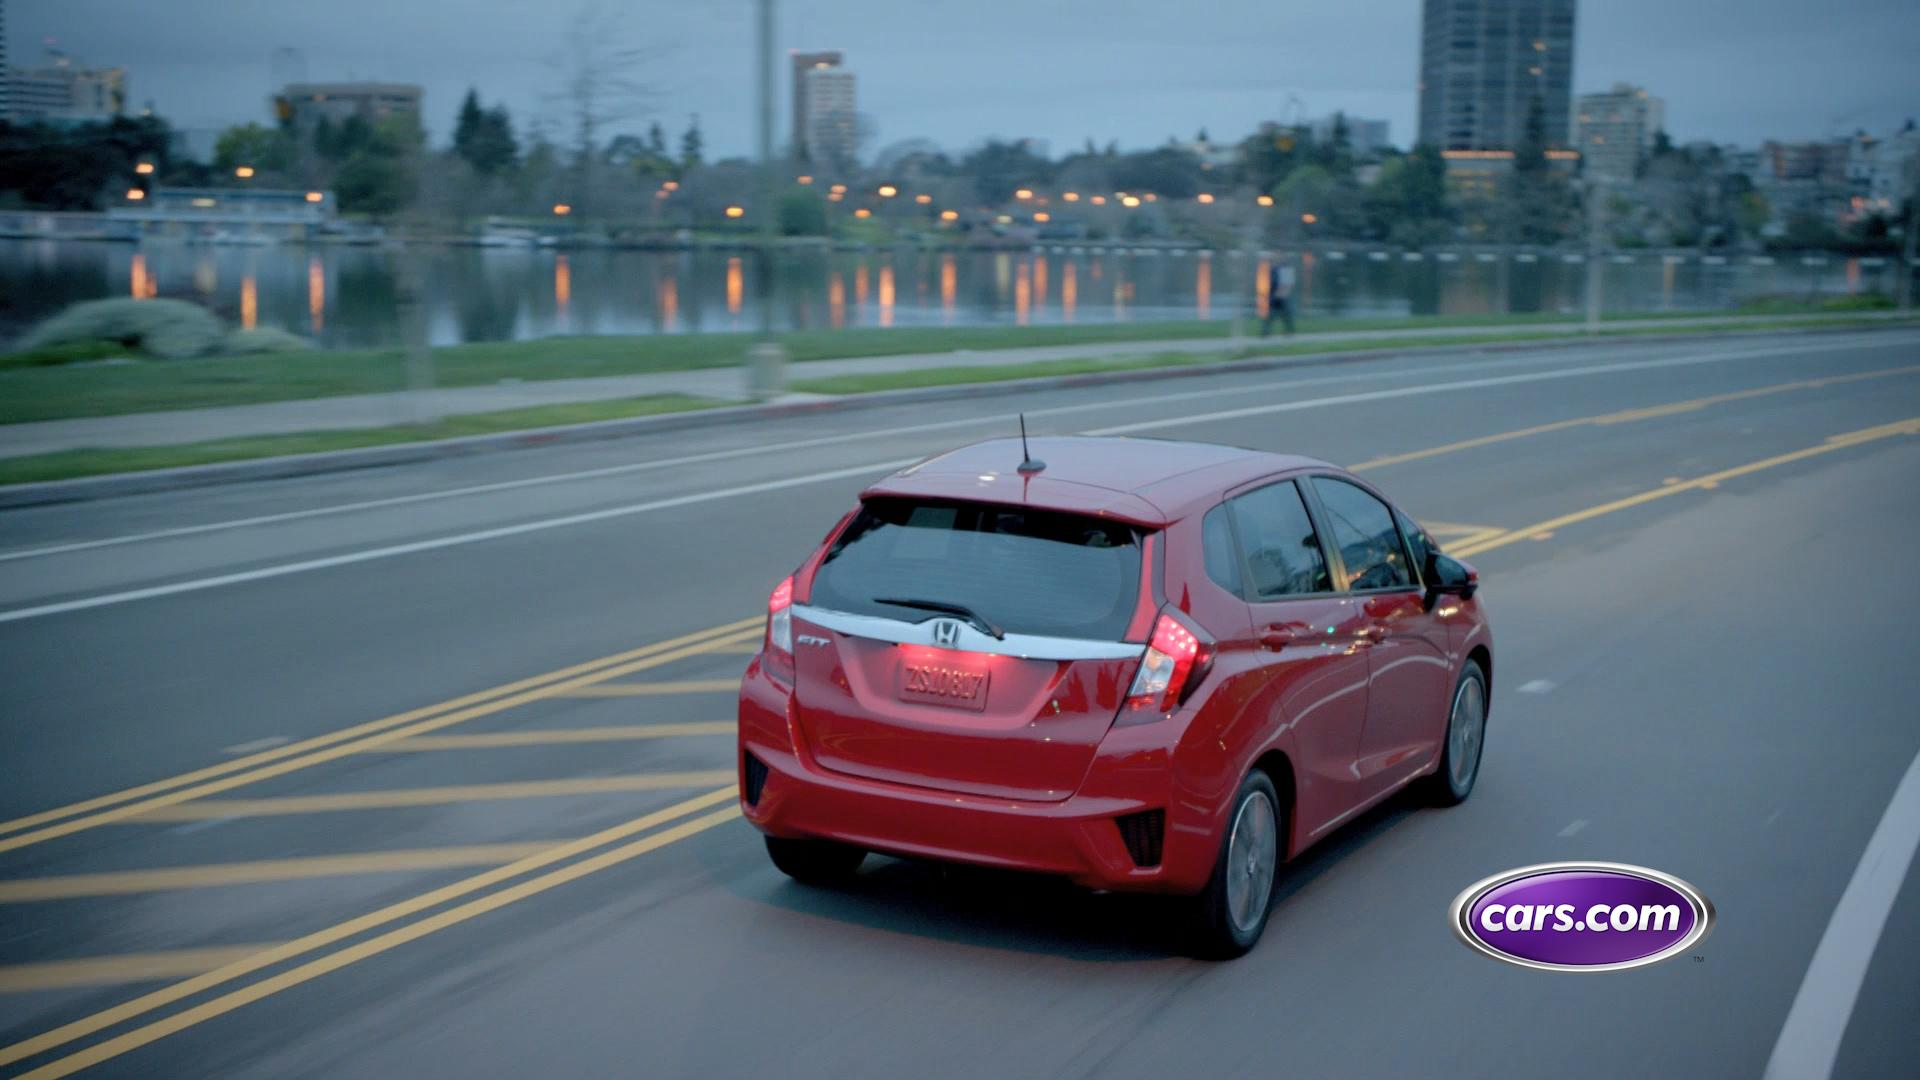 Video: These Cars Are Eco-Friendly and Economical